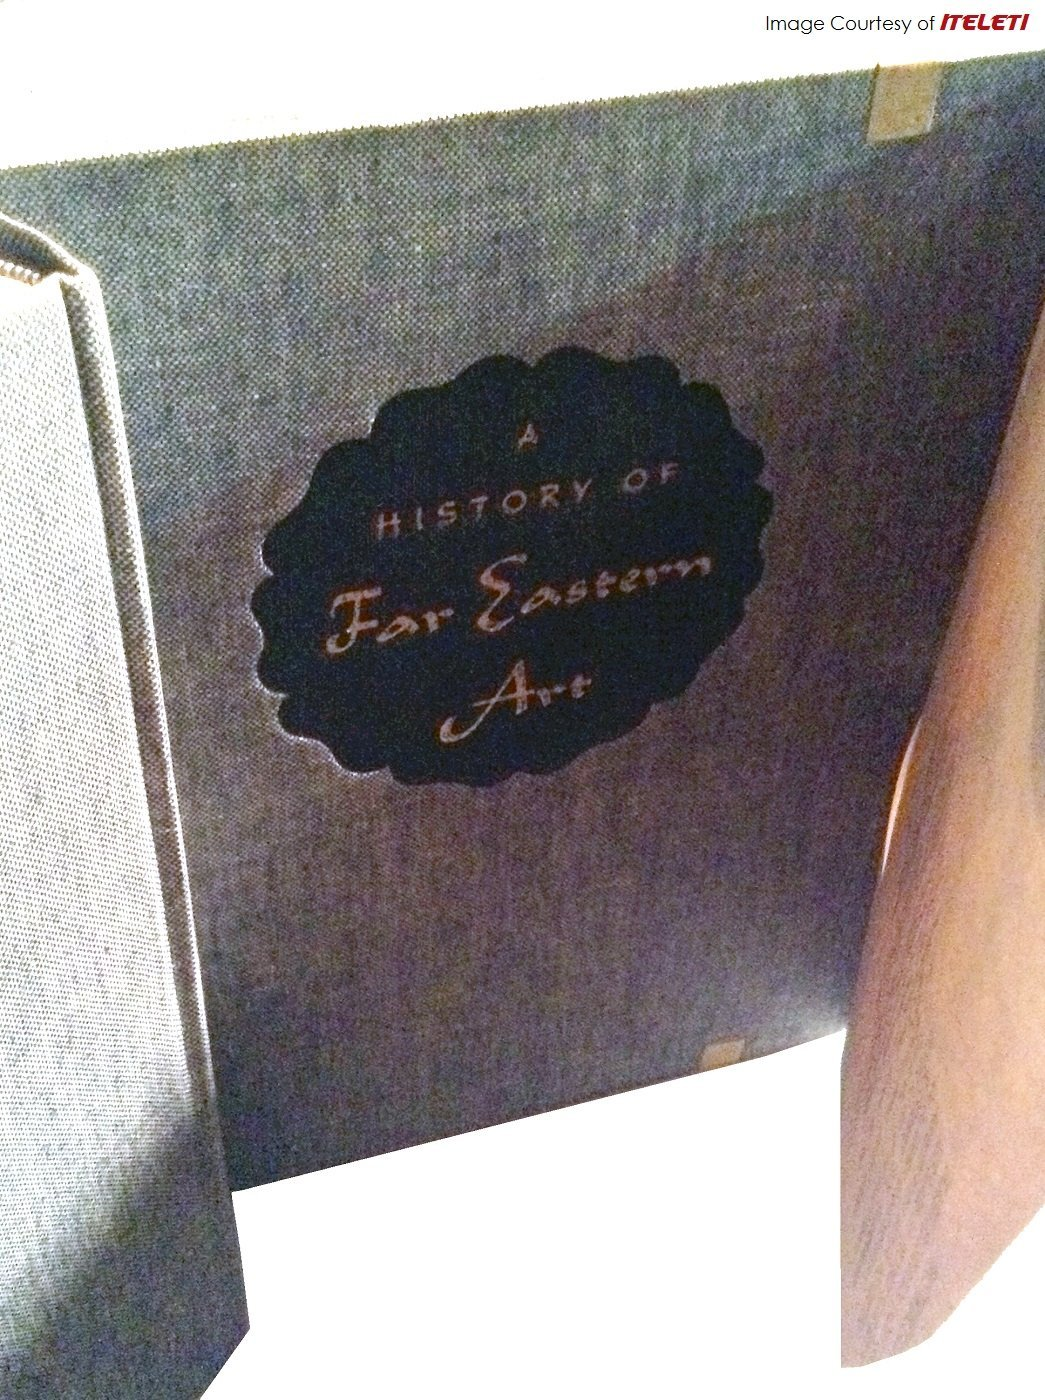 History of Far Eastern Art, A [Hardcover] [Jan 01, 1964] Lee, Sherman E.